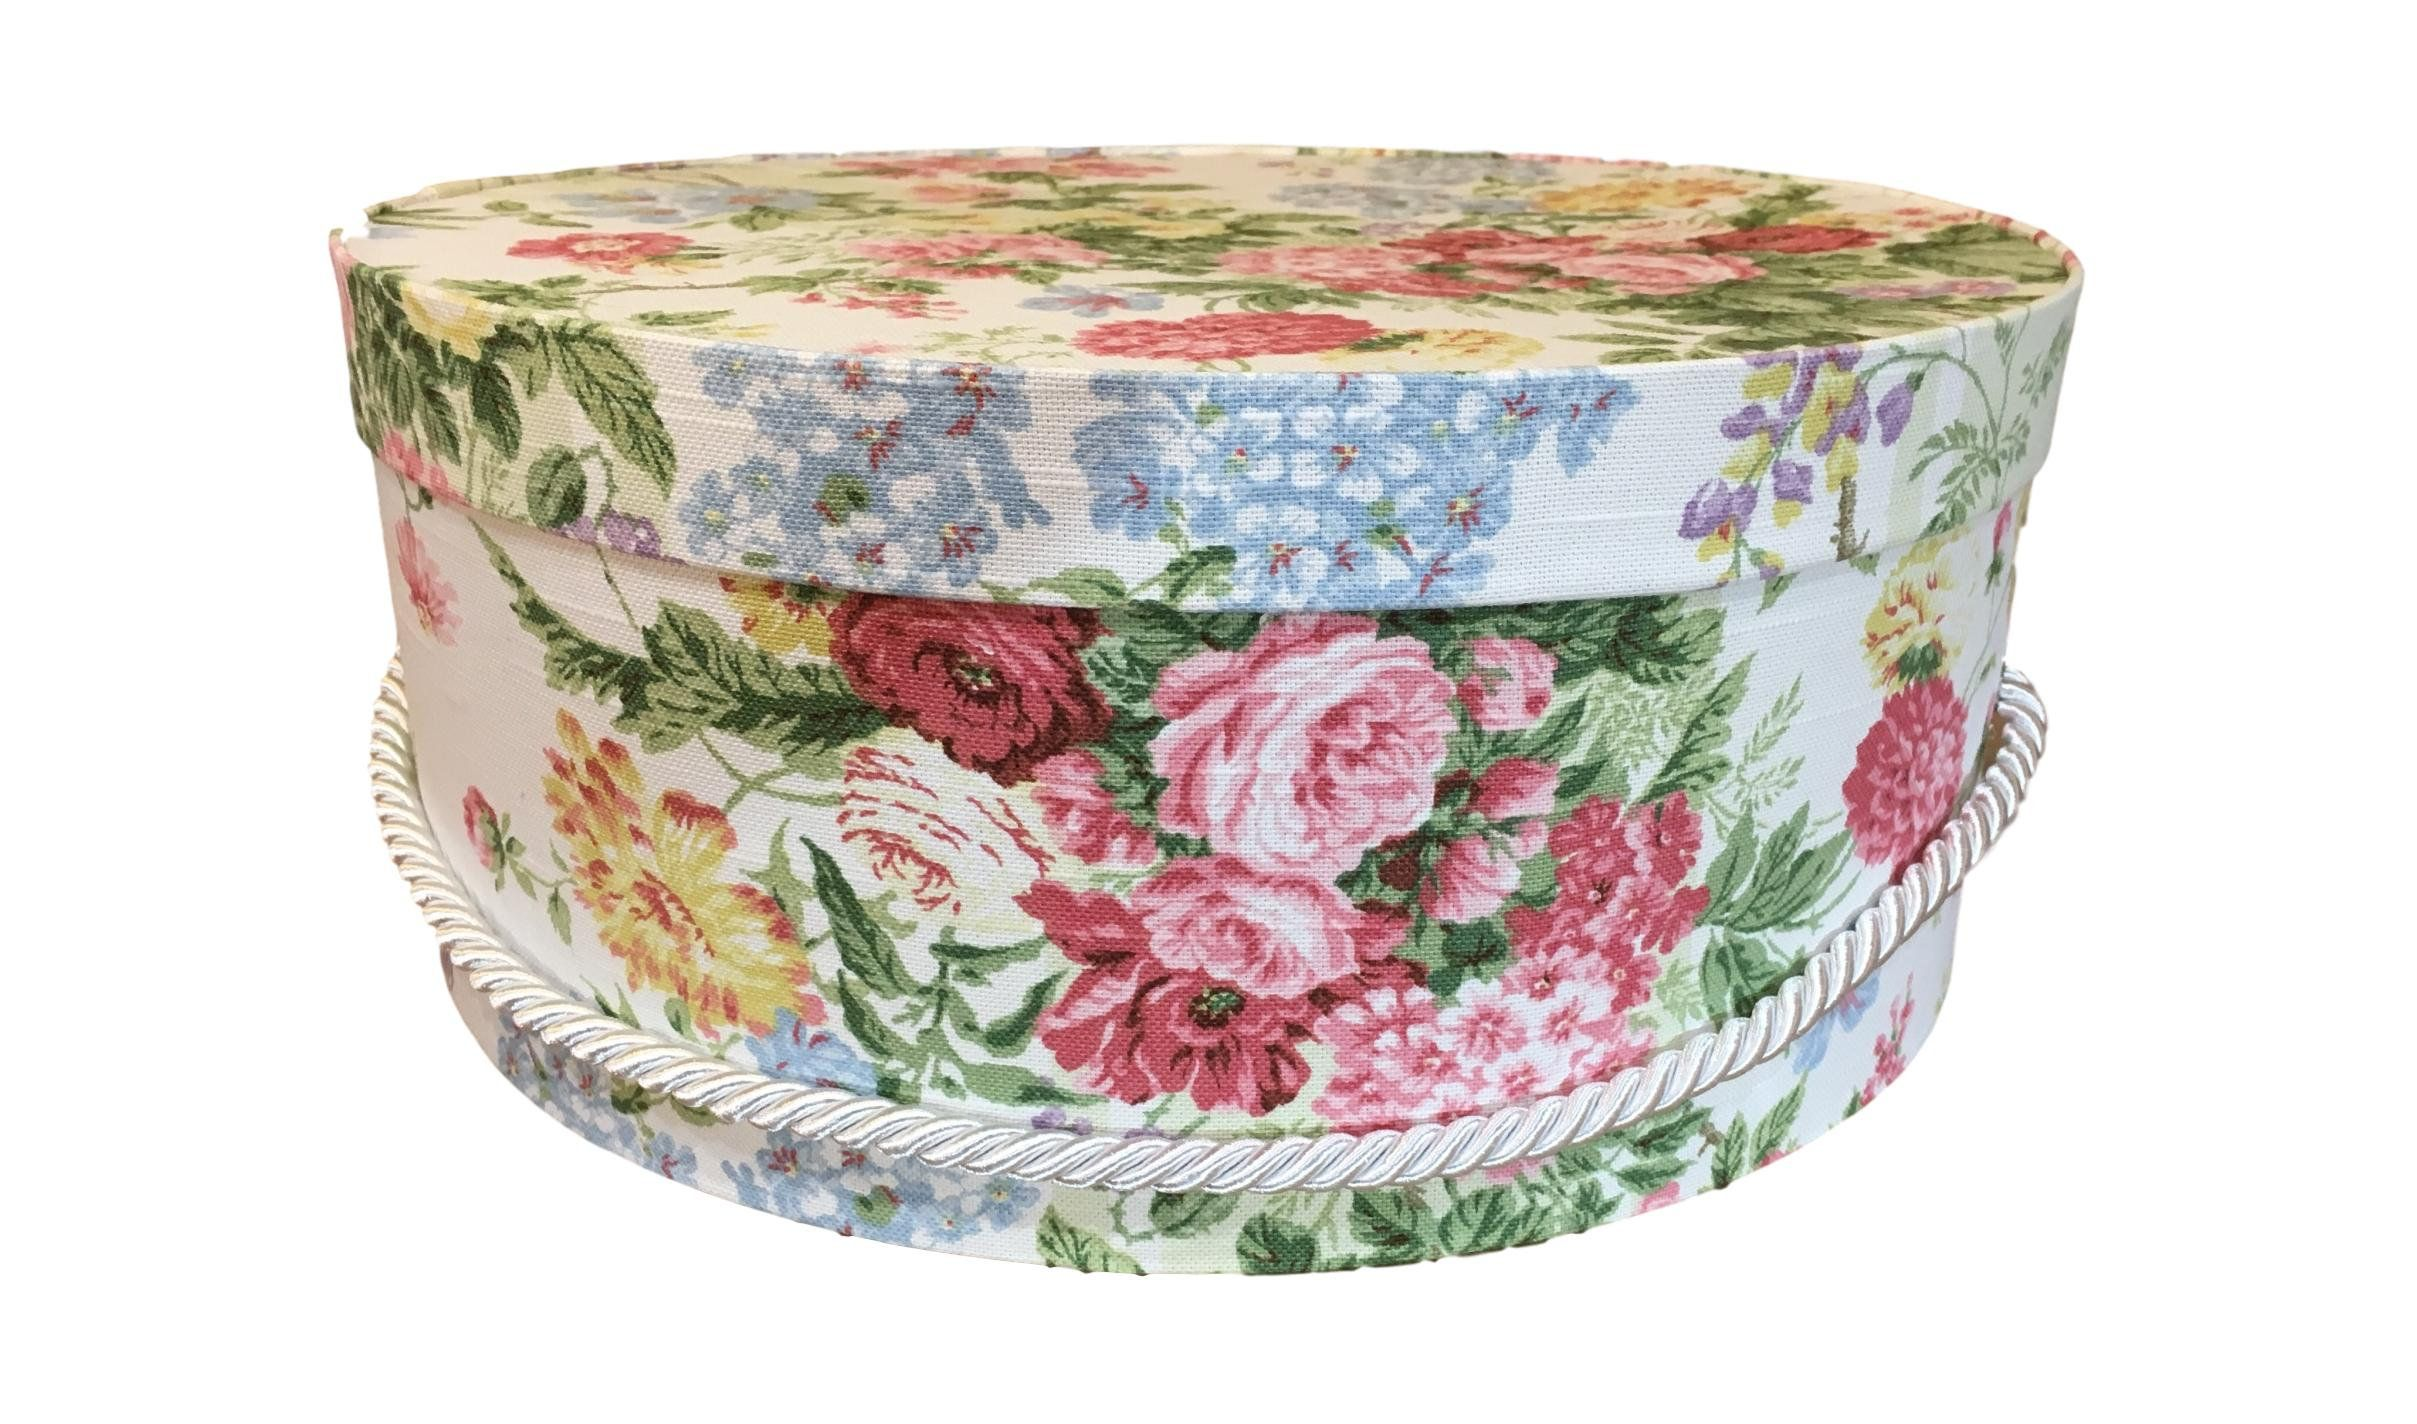 Large Hat Box In Spring Floral Colors Large Decorative Fabric Covered Hat Boxes Round Storage Box Keepsake Boxes With Lid Hat Box Floral Fabric Fabric Decor